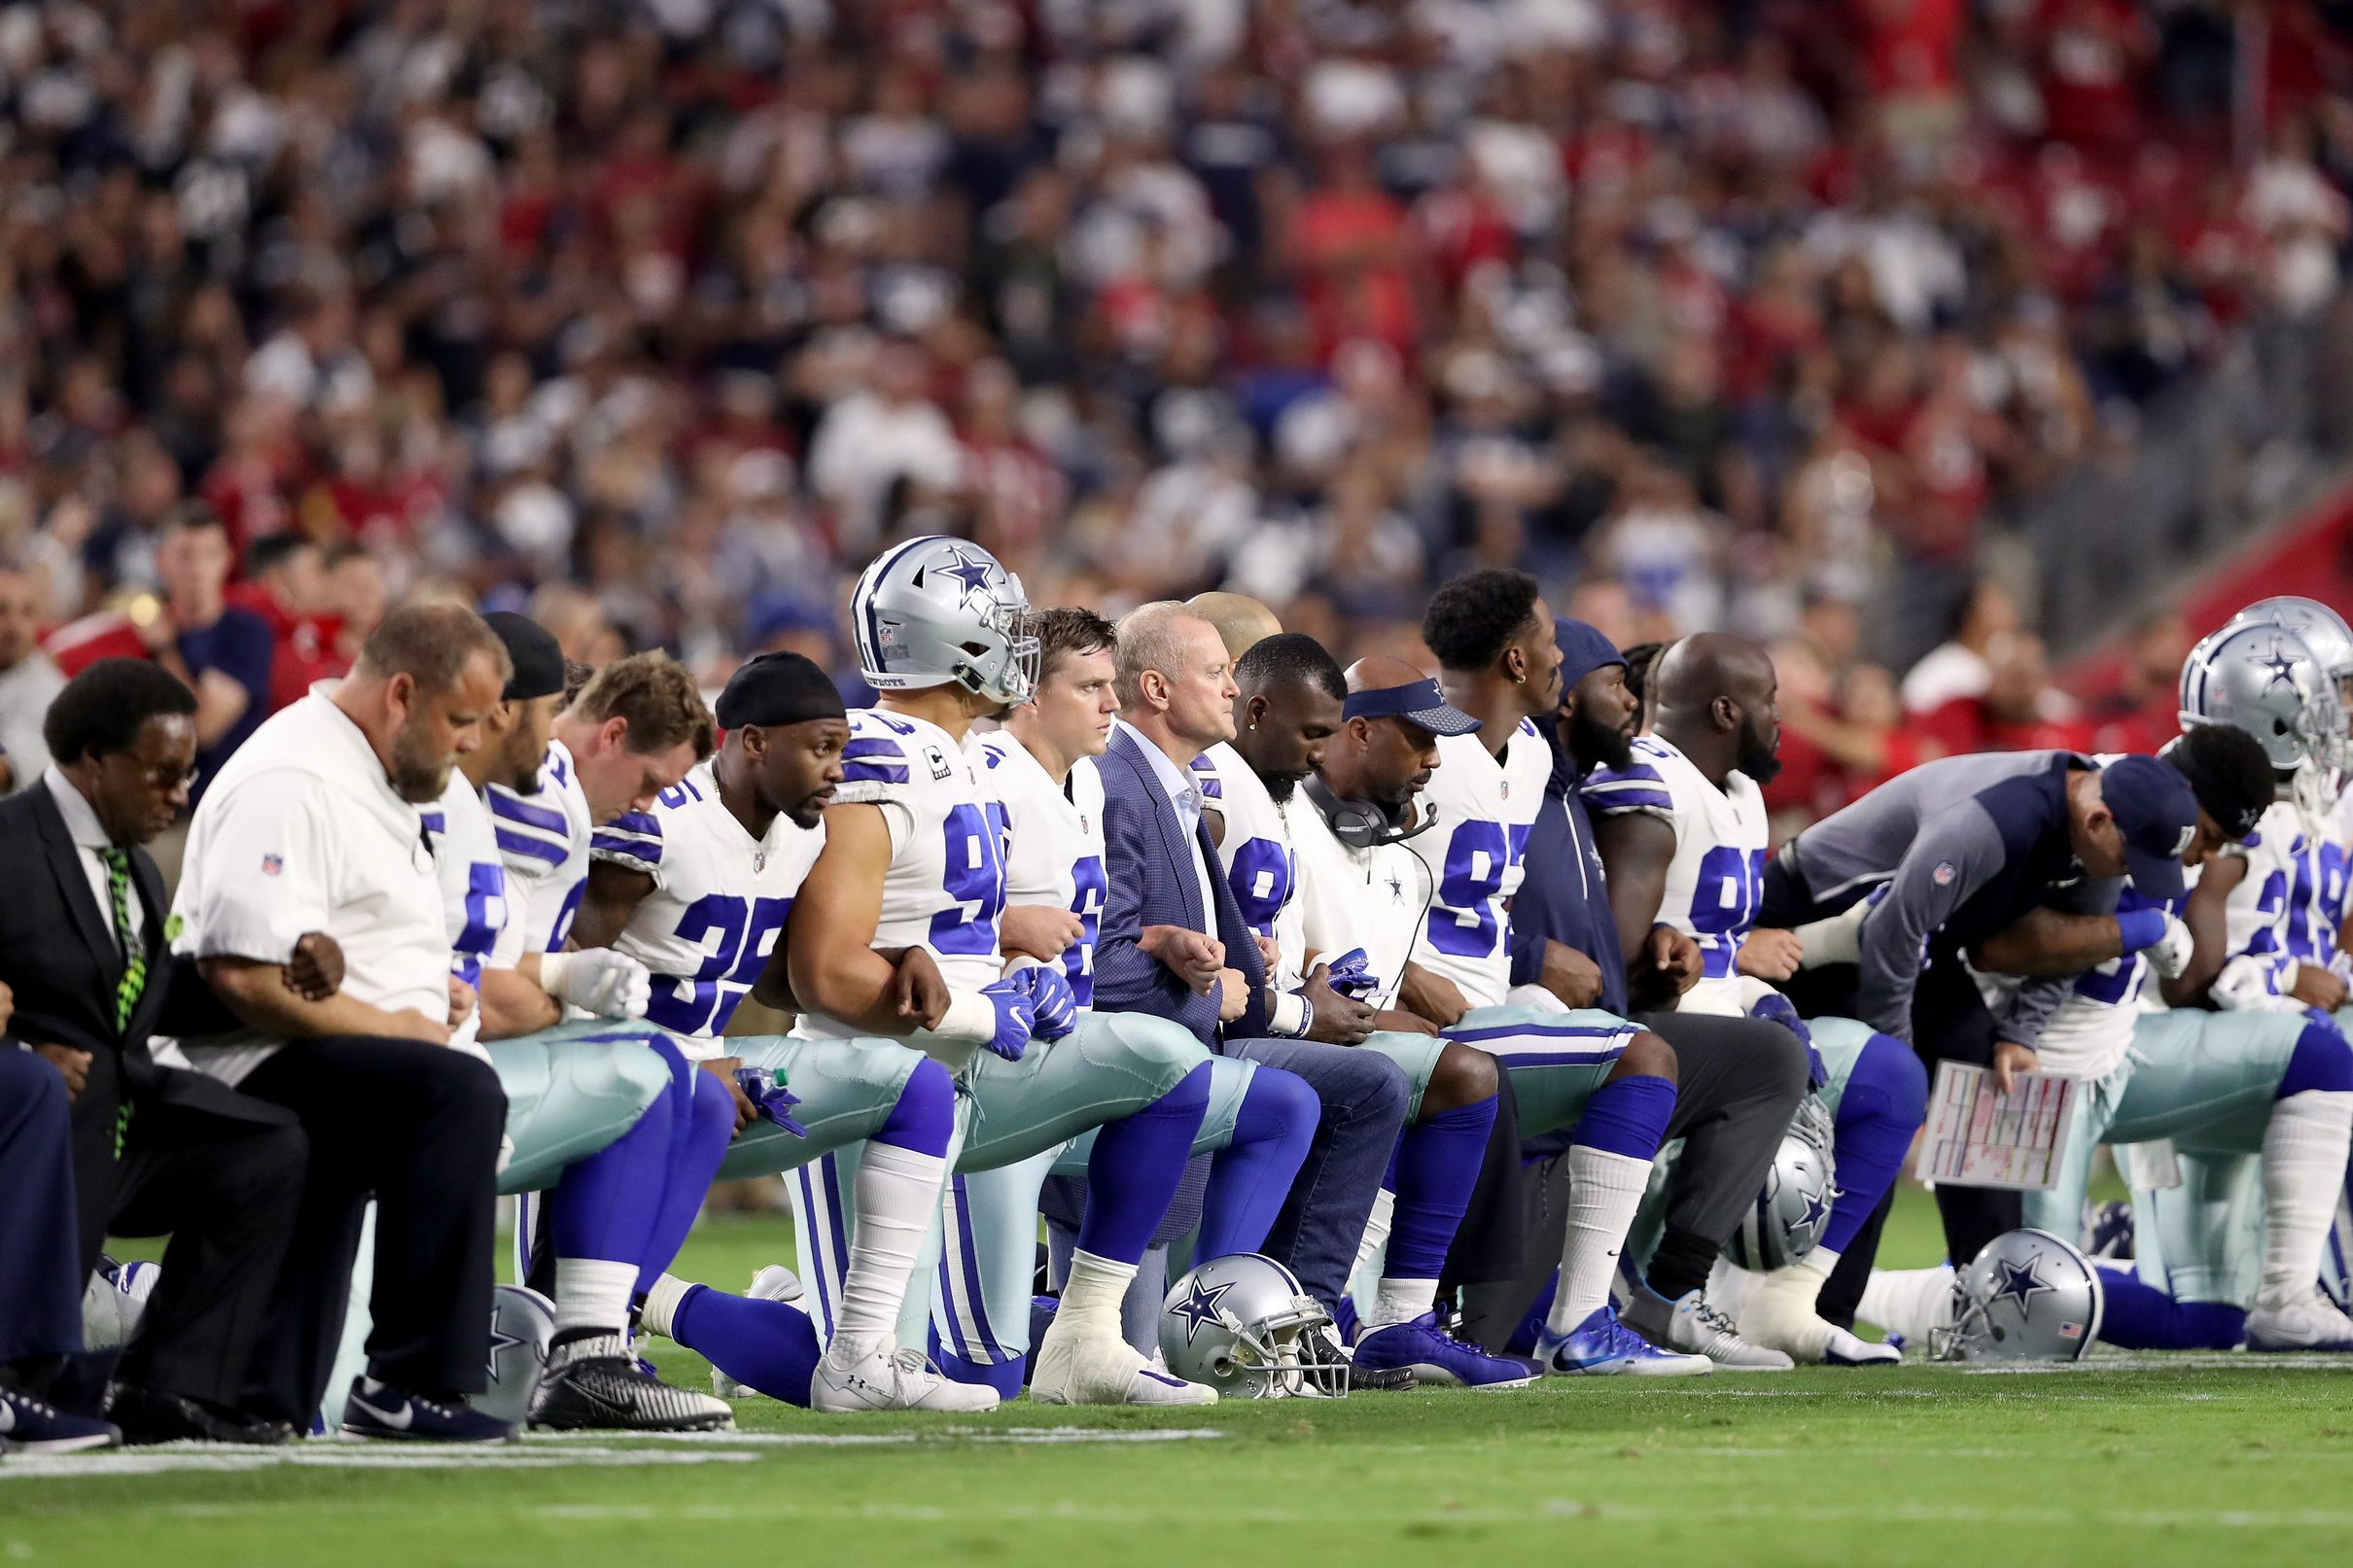 Benching NFL players for protesting during the anthem